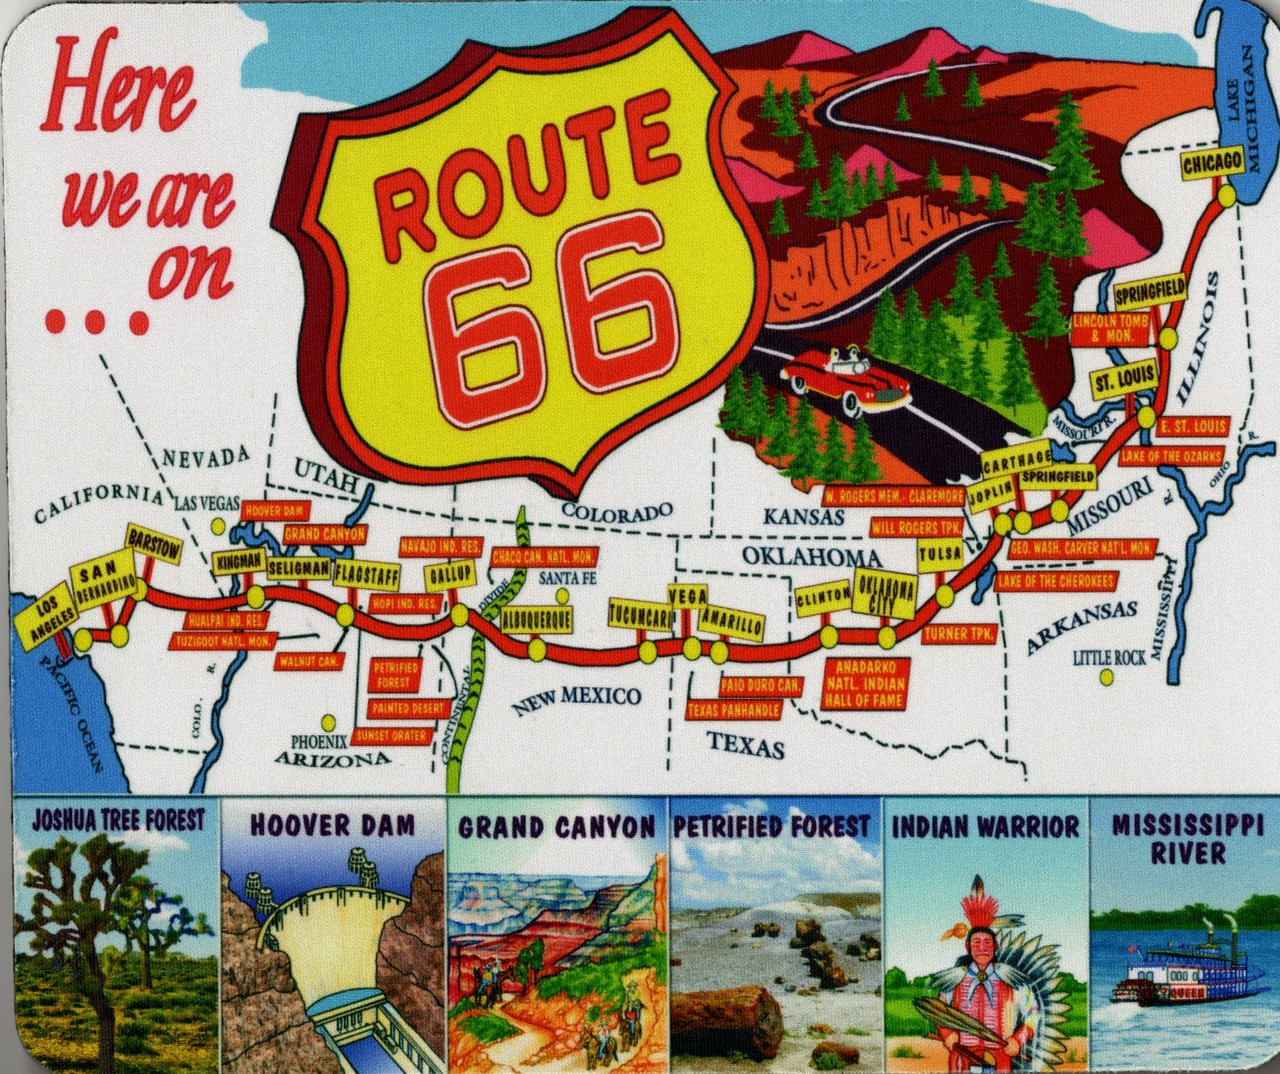 Vintage Route 66 Map Mousepad on us 52 map, us 70 map, us 27 map, us 75 map, us 90 map, us 54 map, us 58 map, us 62 map, us 74 map, us 45 map, us 65 map, us 50 map, us 25 map, us 83 map, us 95 map, oklahoma on us map,